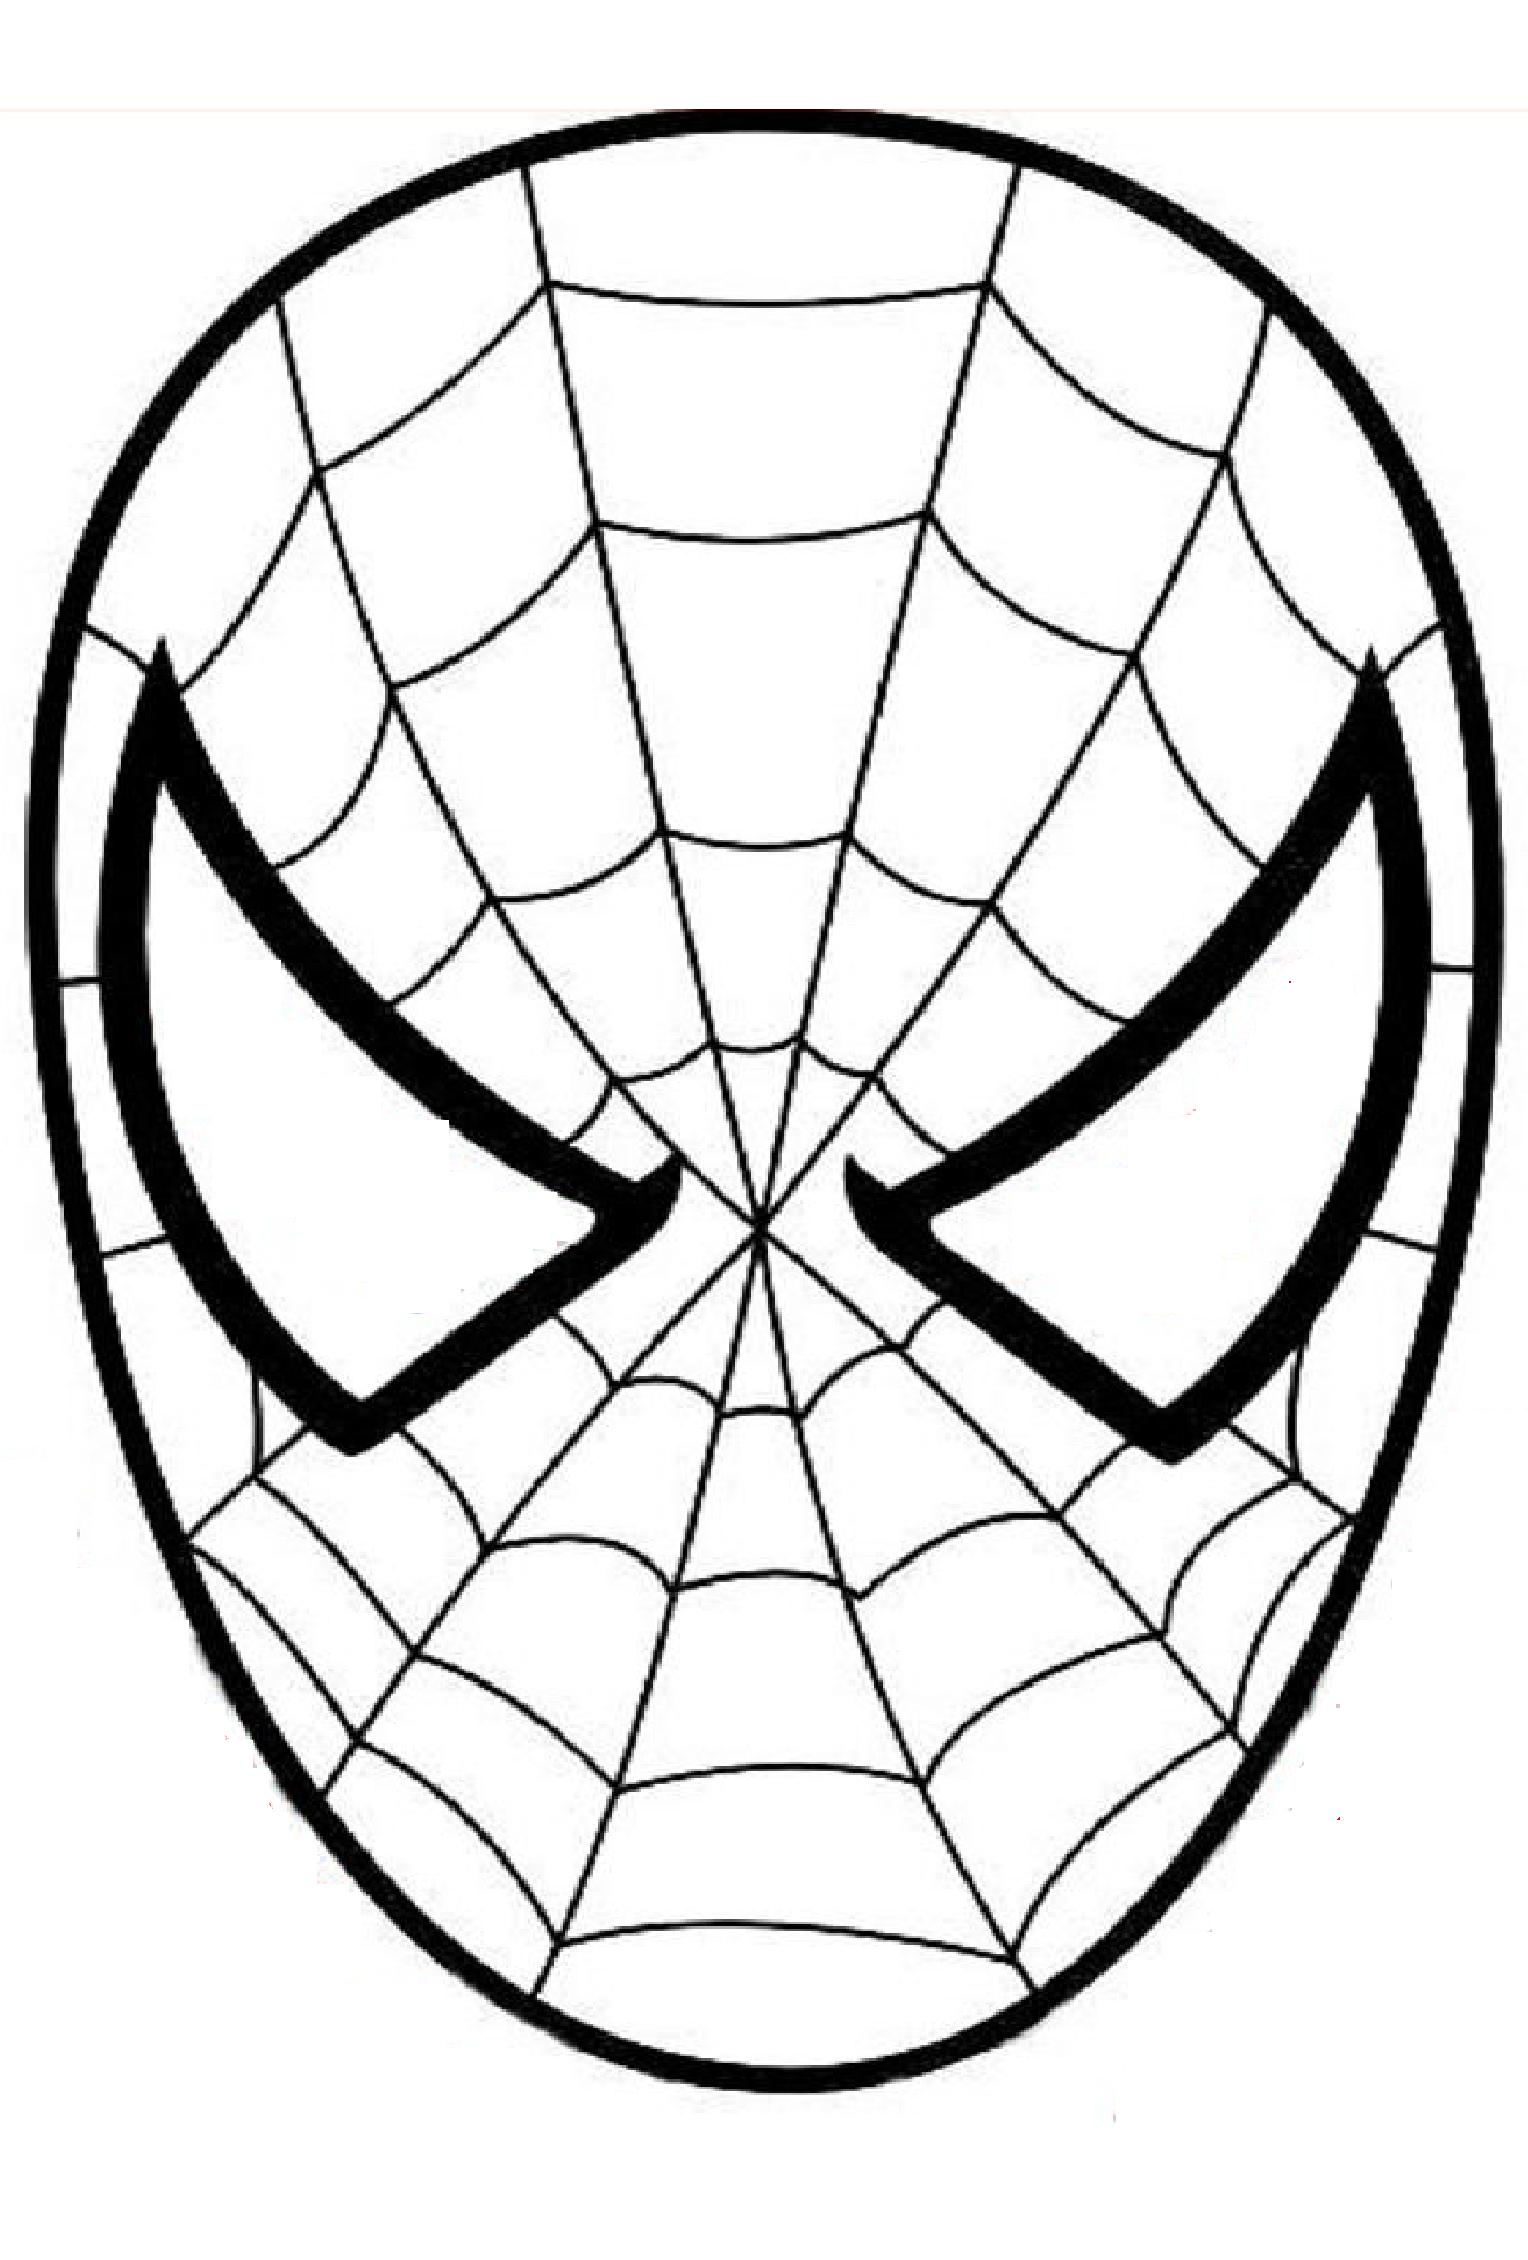 spiderman picture to color spiderman coloring pages download free coloring sheets picture color to spiderman